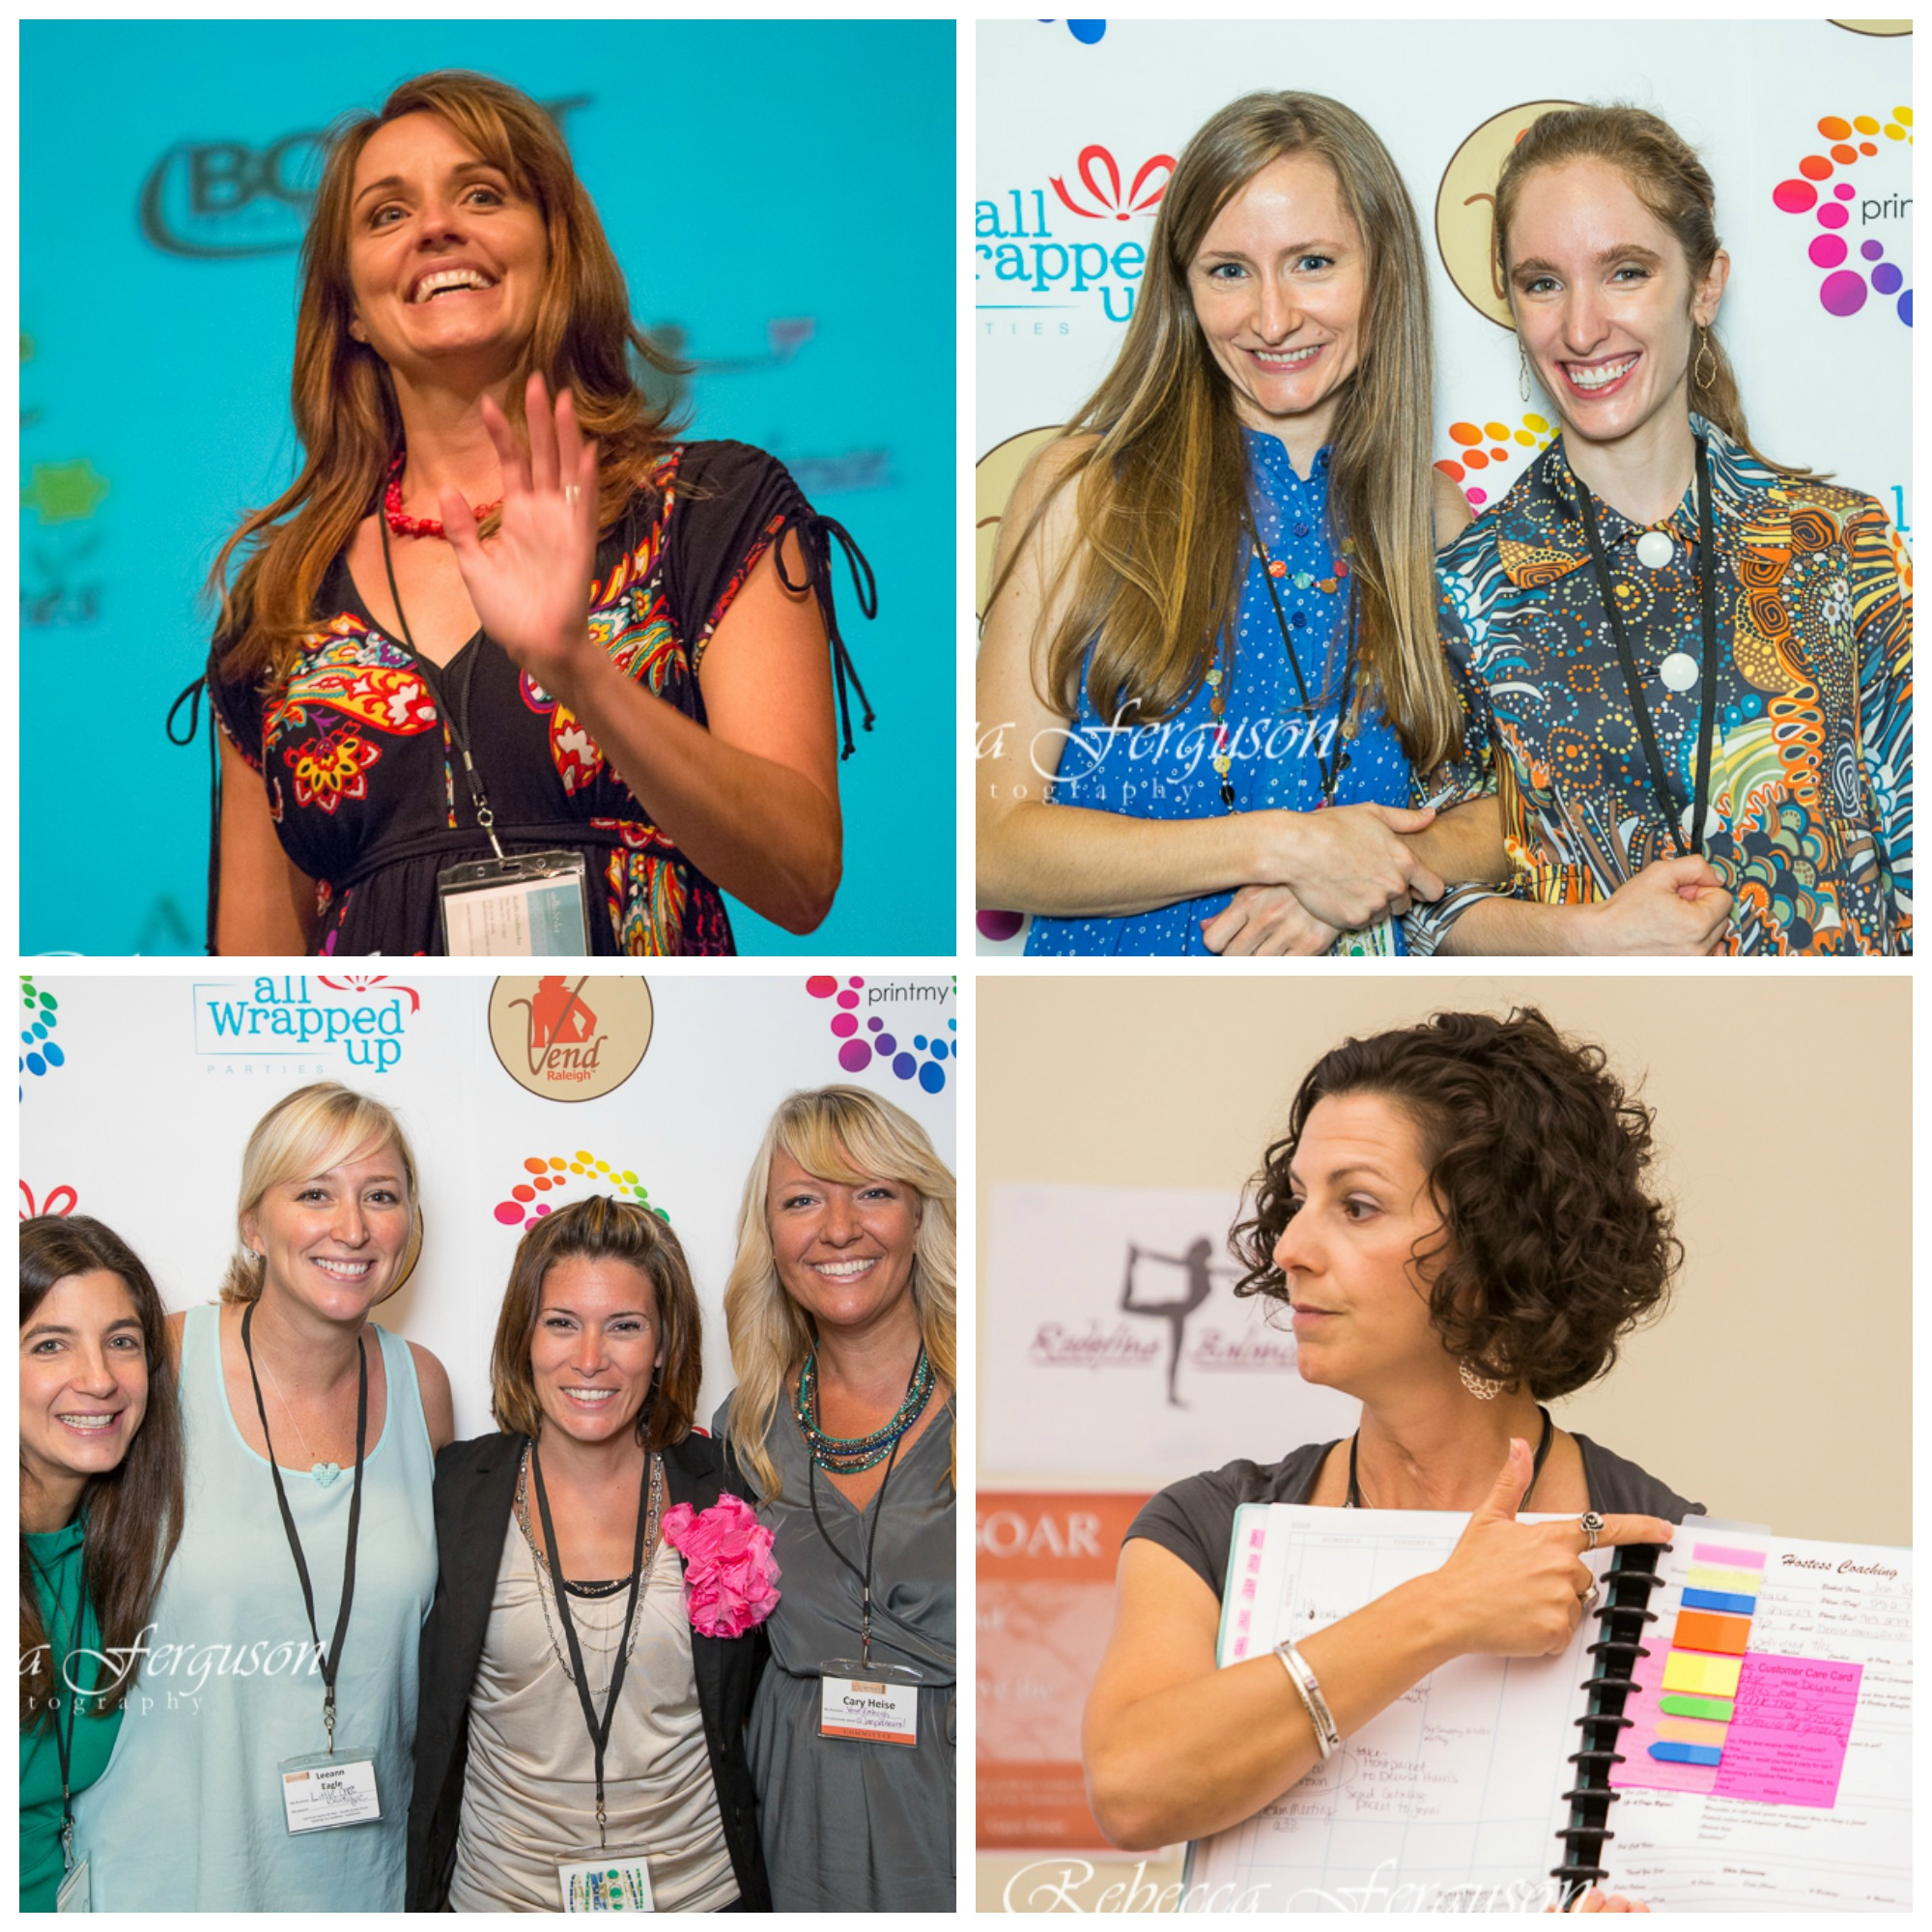 Vend Raleigh Illuminate , conference for business women